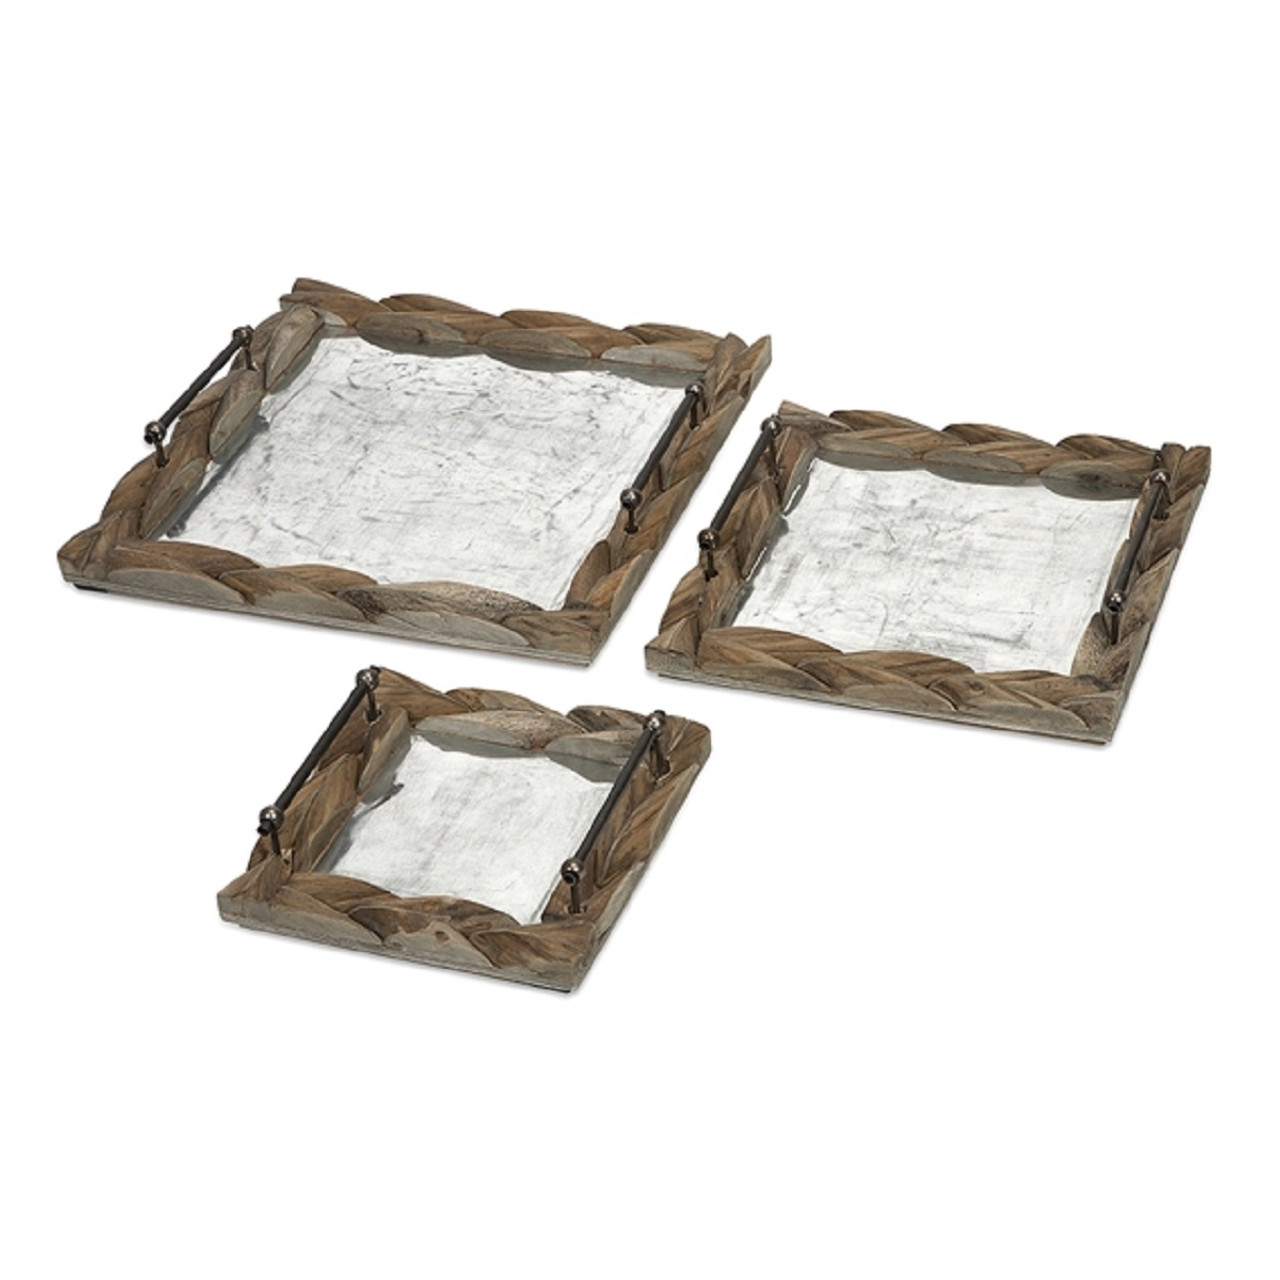 Set Of 3 Vintage Style Wooden Carved Rustic Serving Trays Christmas Central